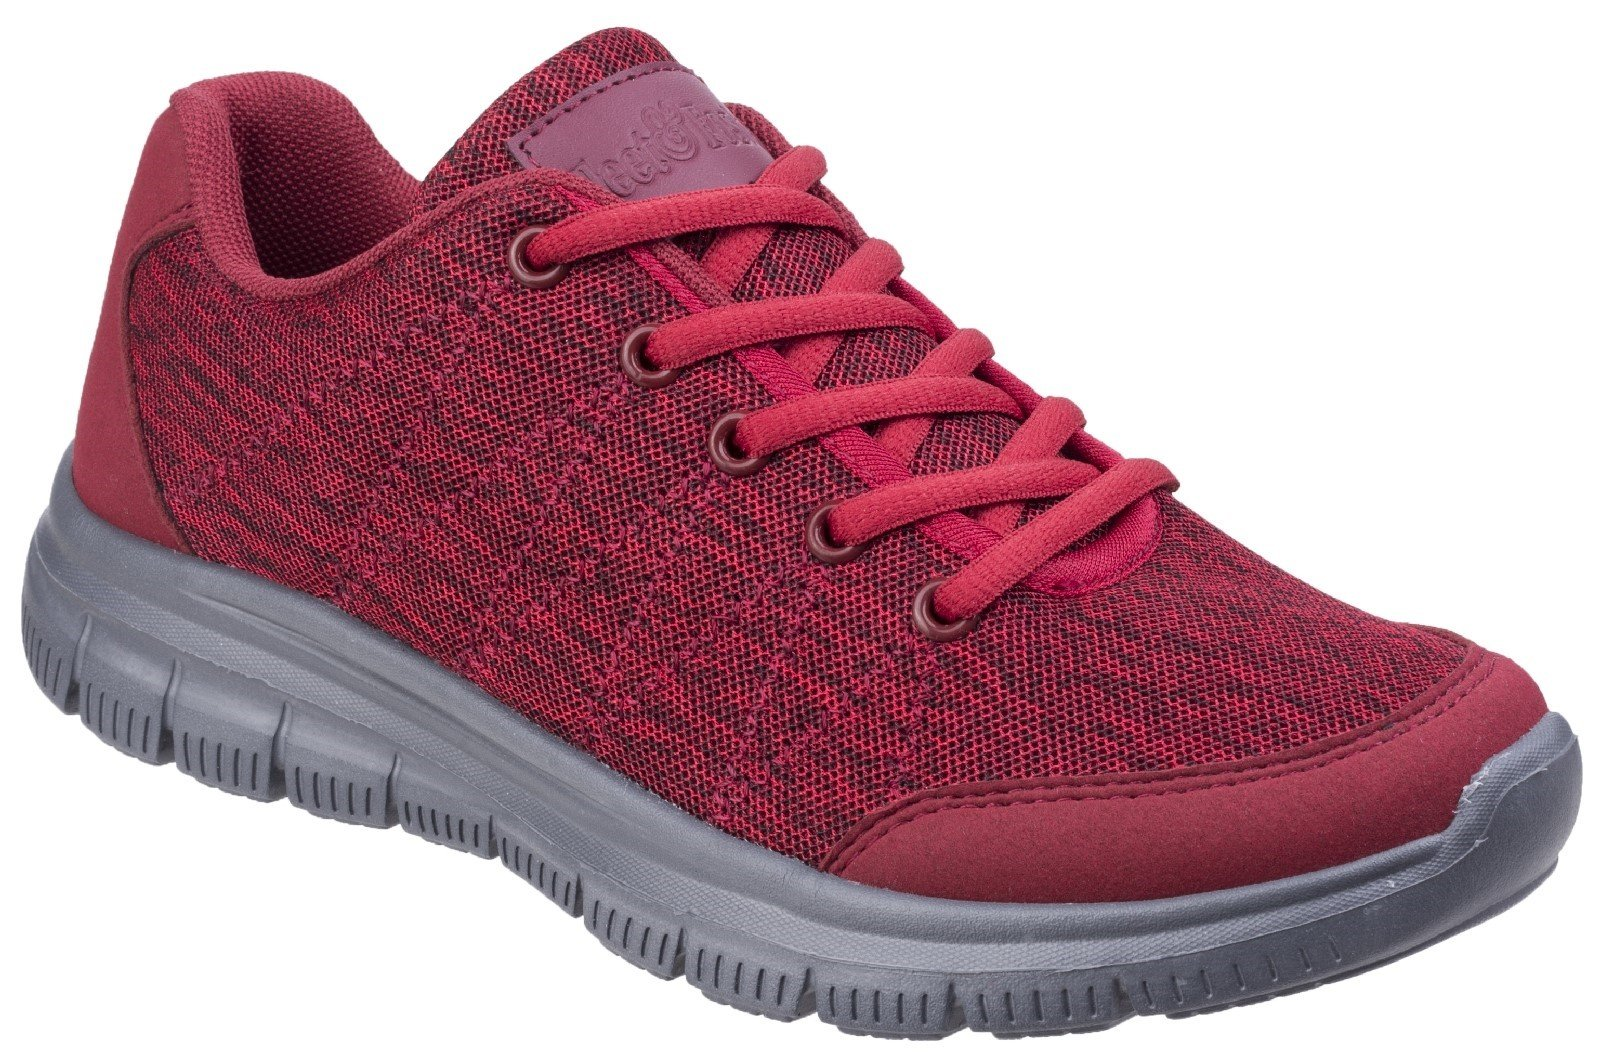 Fleet & Foster Women's Elanor Lace Up Trainer Various Colours 27155-45626 - Red 3